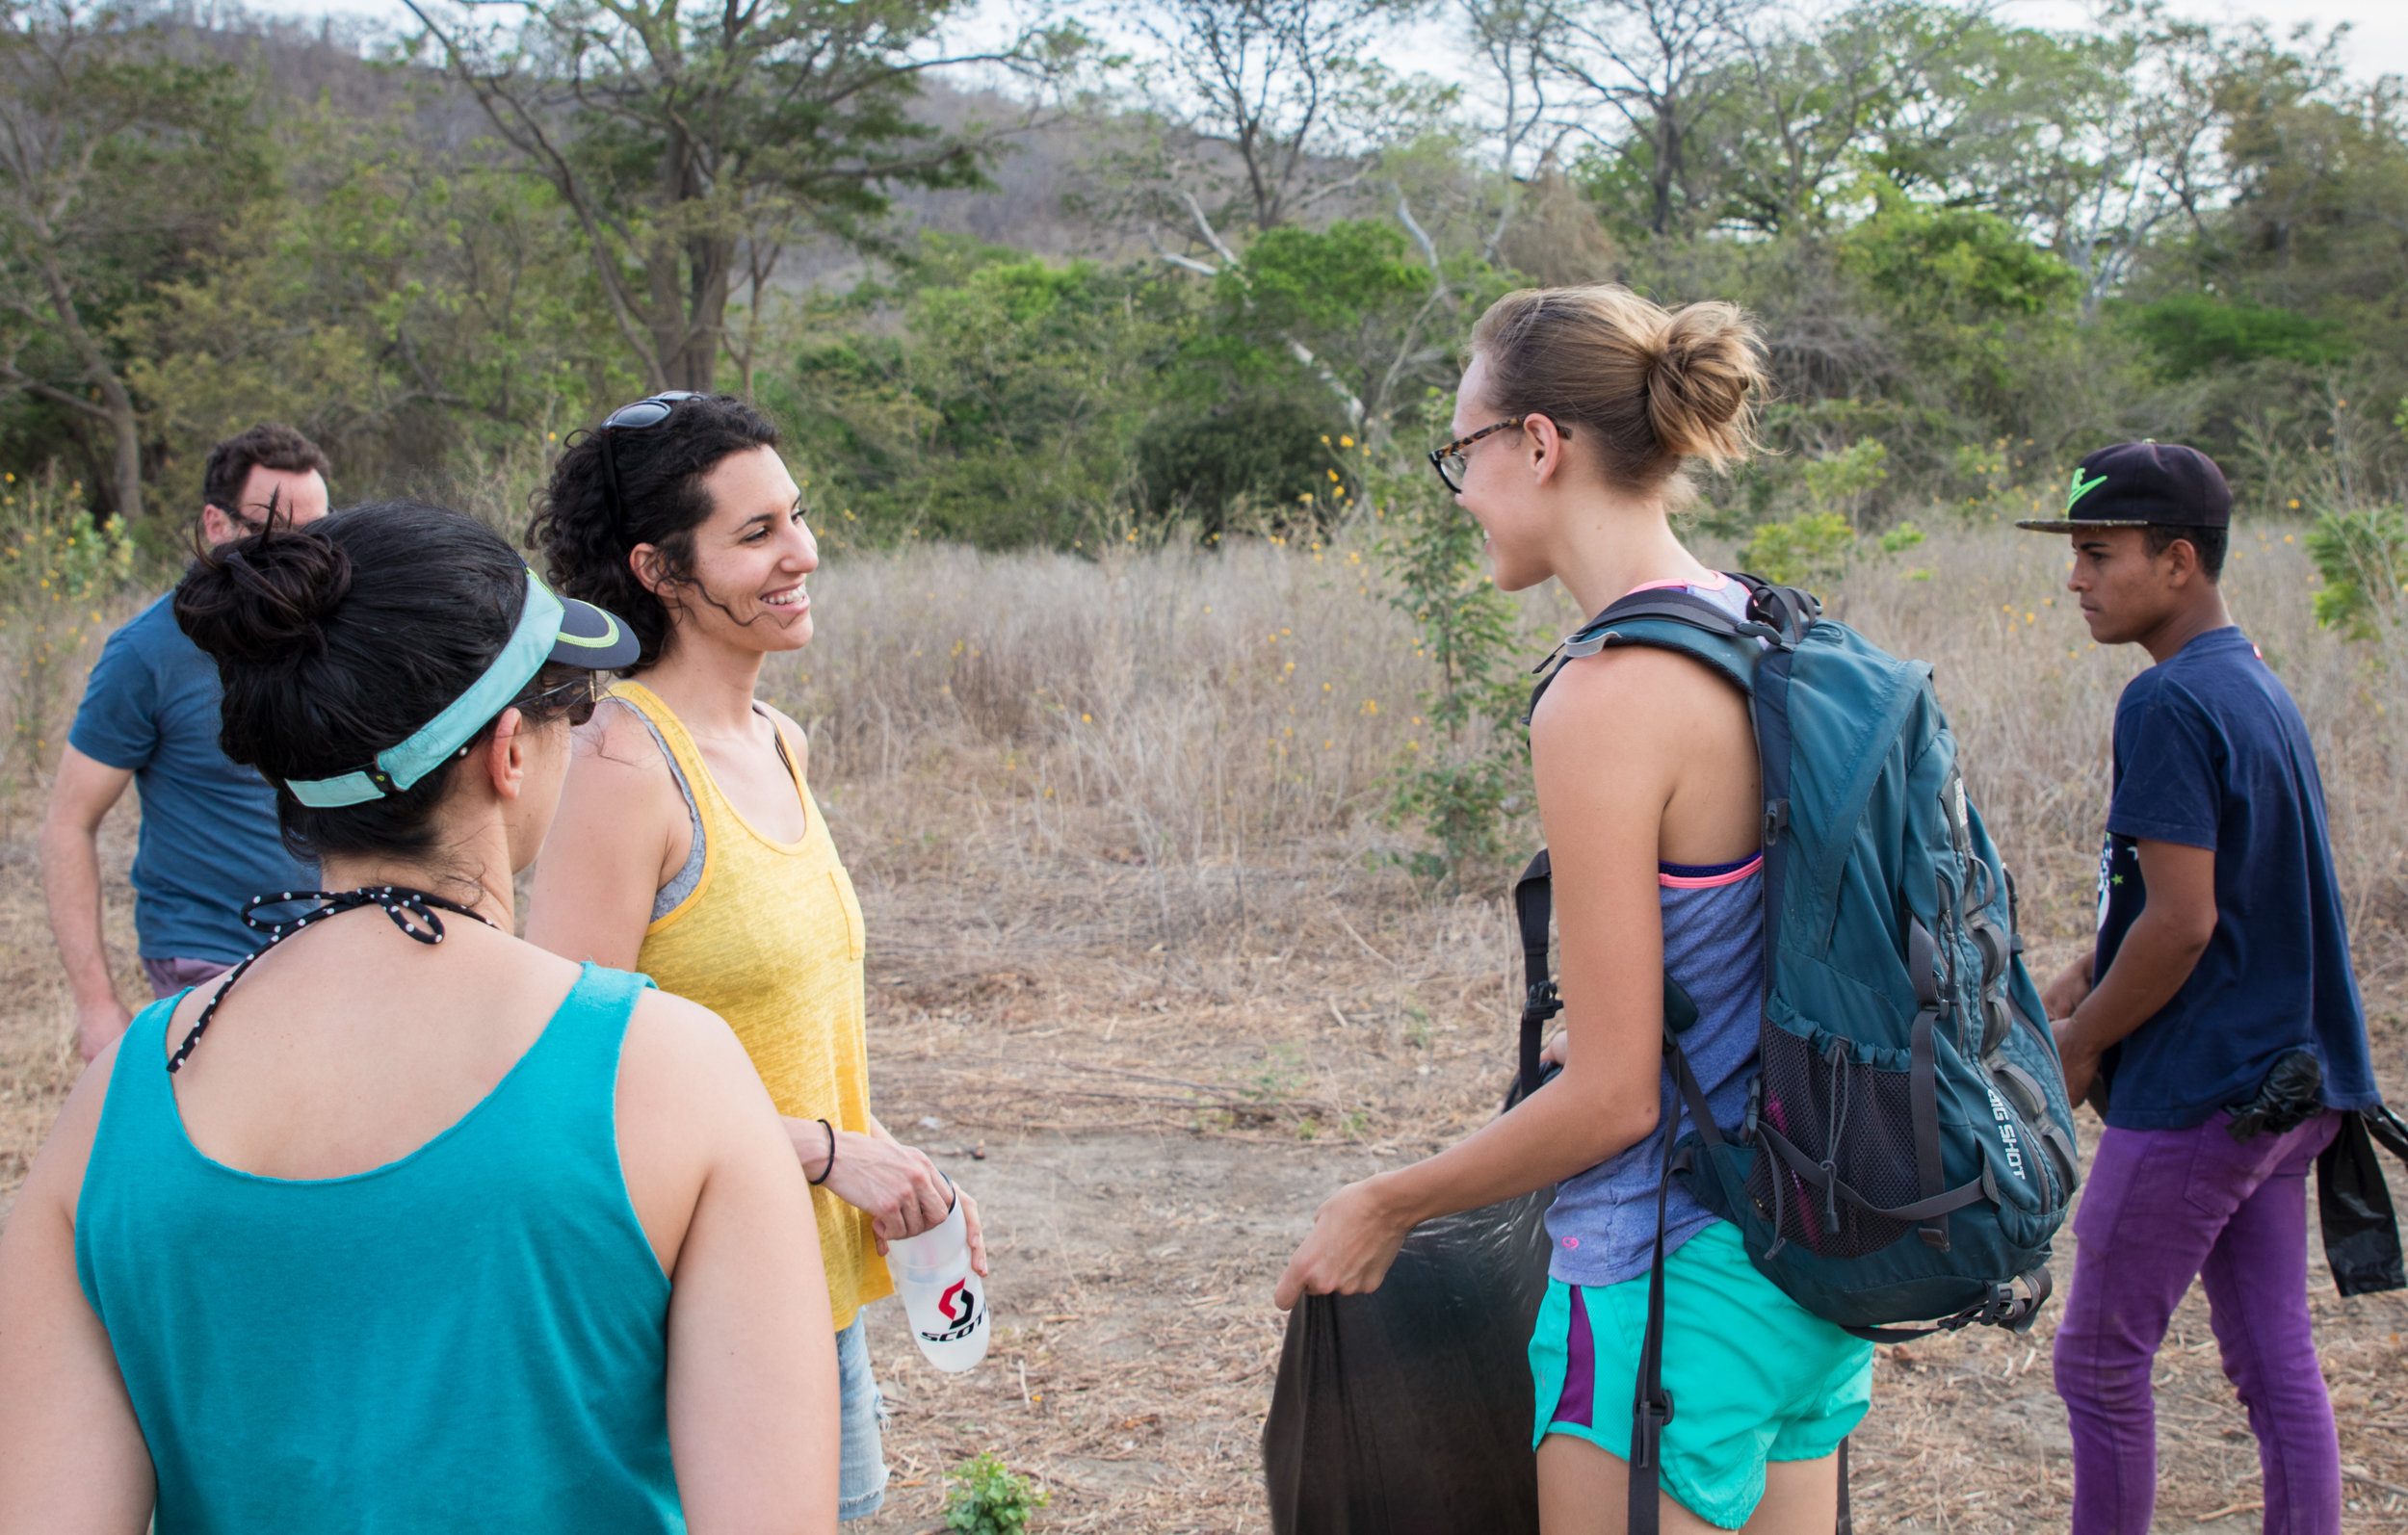 Sarah and Corrie Burdett, the foundation's Executive Director, chat while working with the kids on an environmental activity.